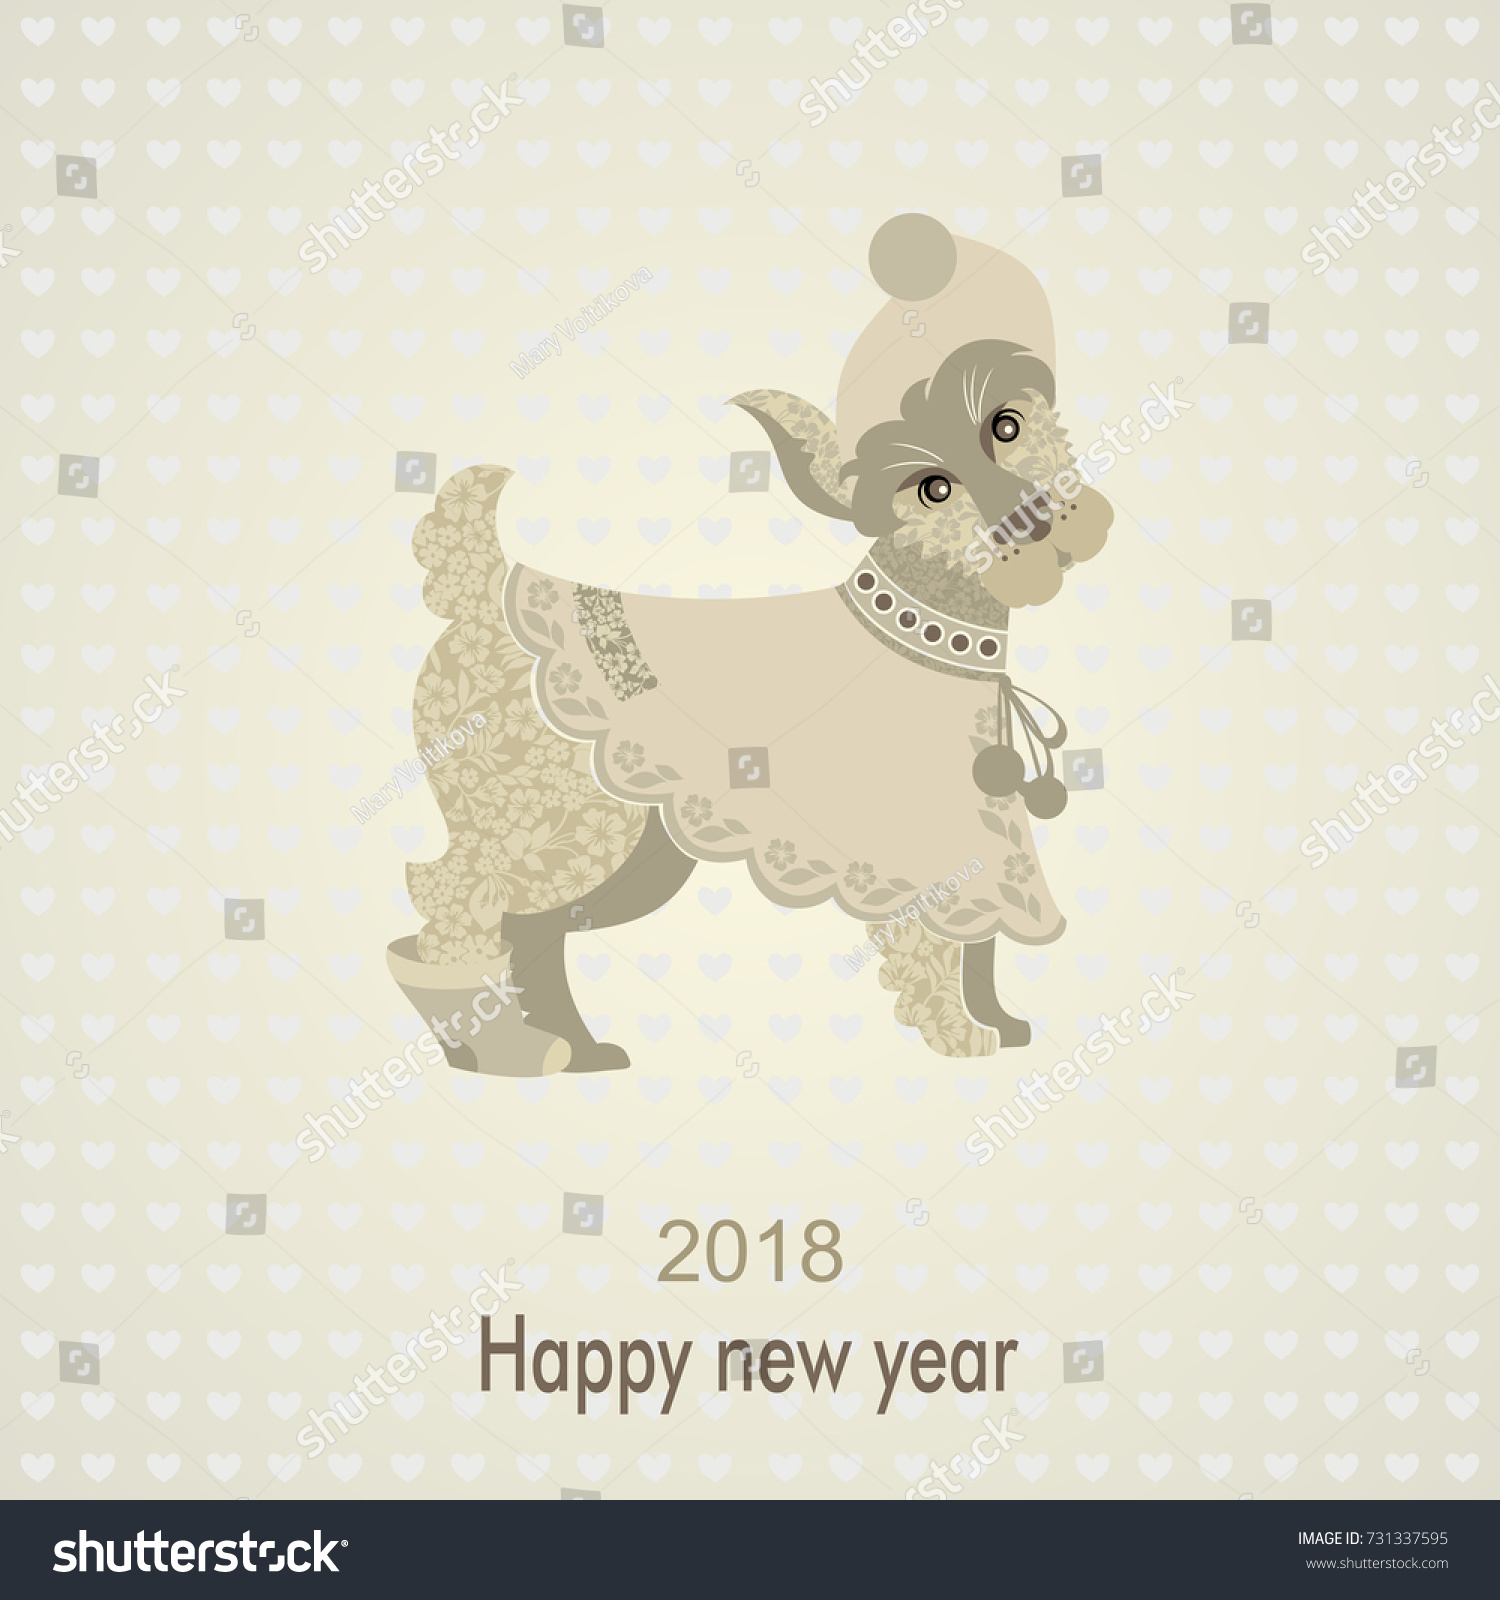 dog is the symbol of the chinese new year 2018 vintage greeting postcard